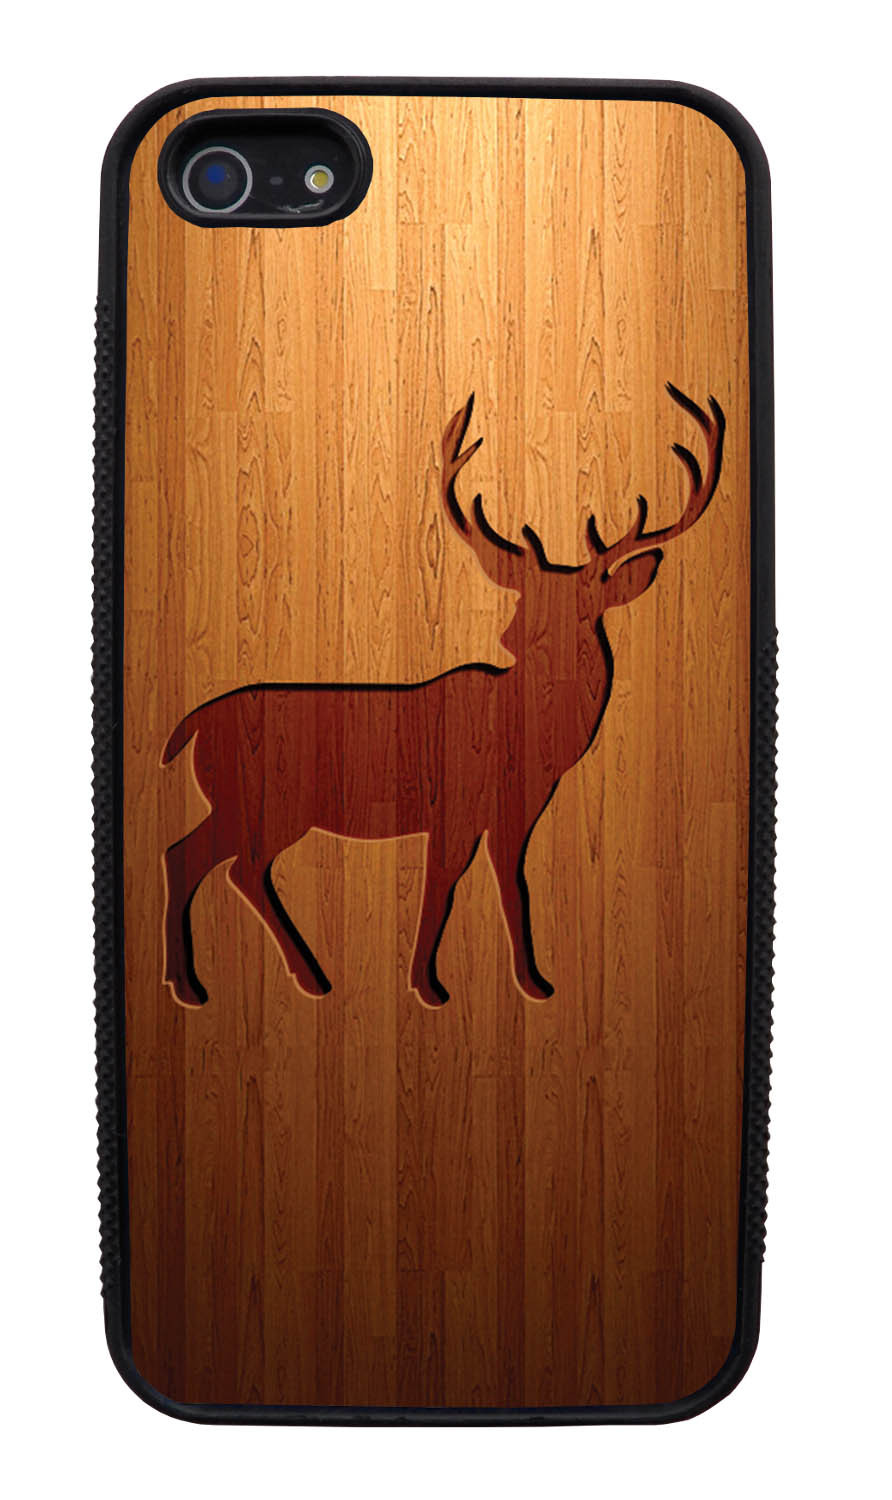 Apple iPhone 5 / 5S Deer Case - Simulated Wood Engraving - Picture - Black Slim Rubber Case